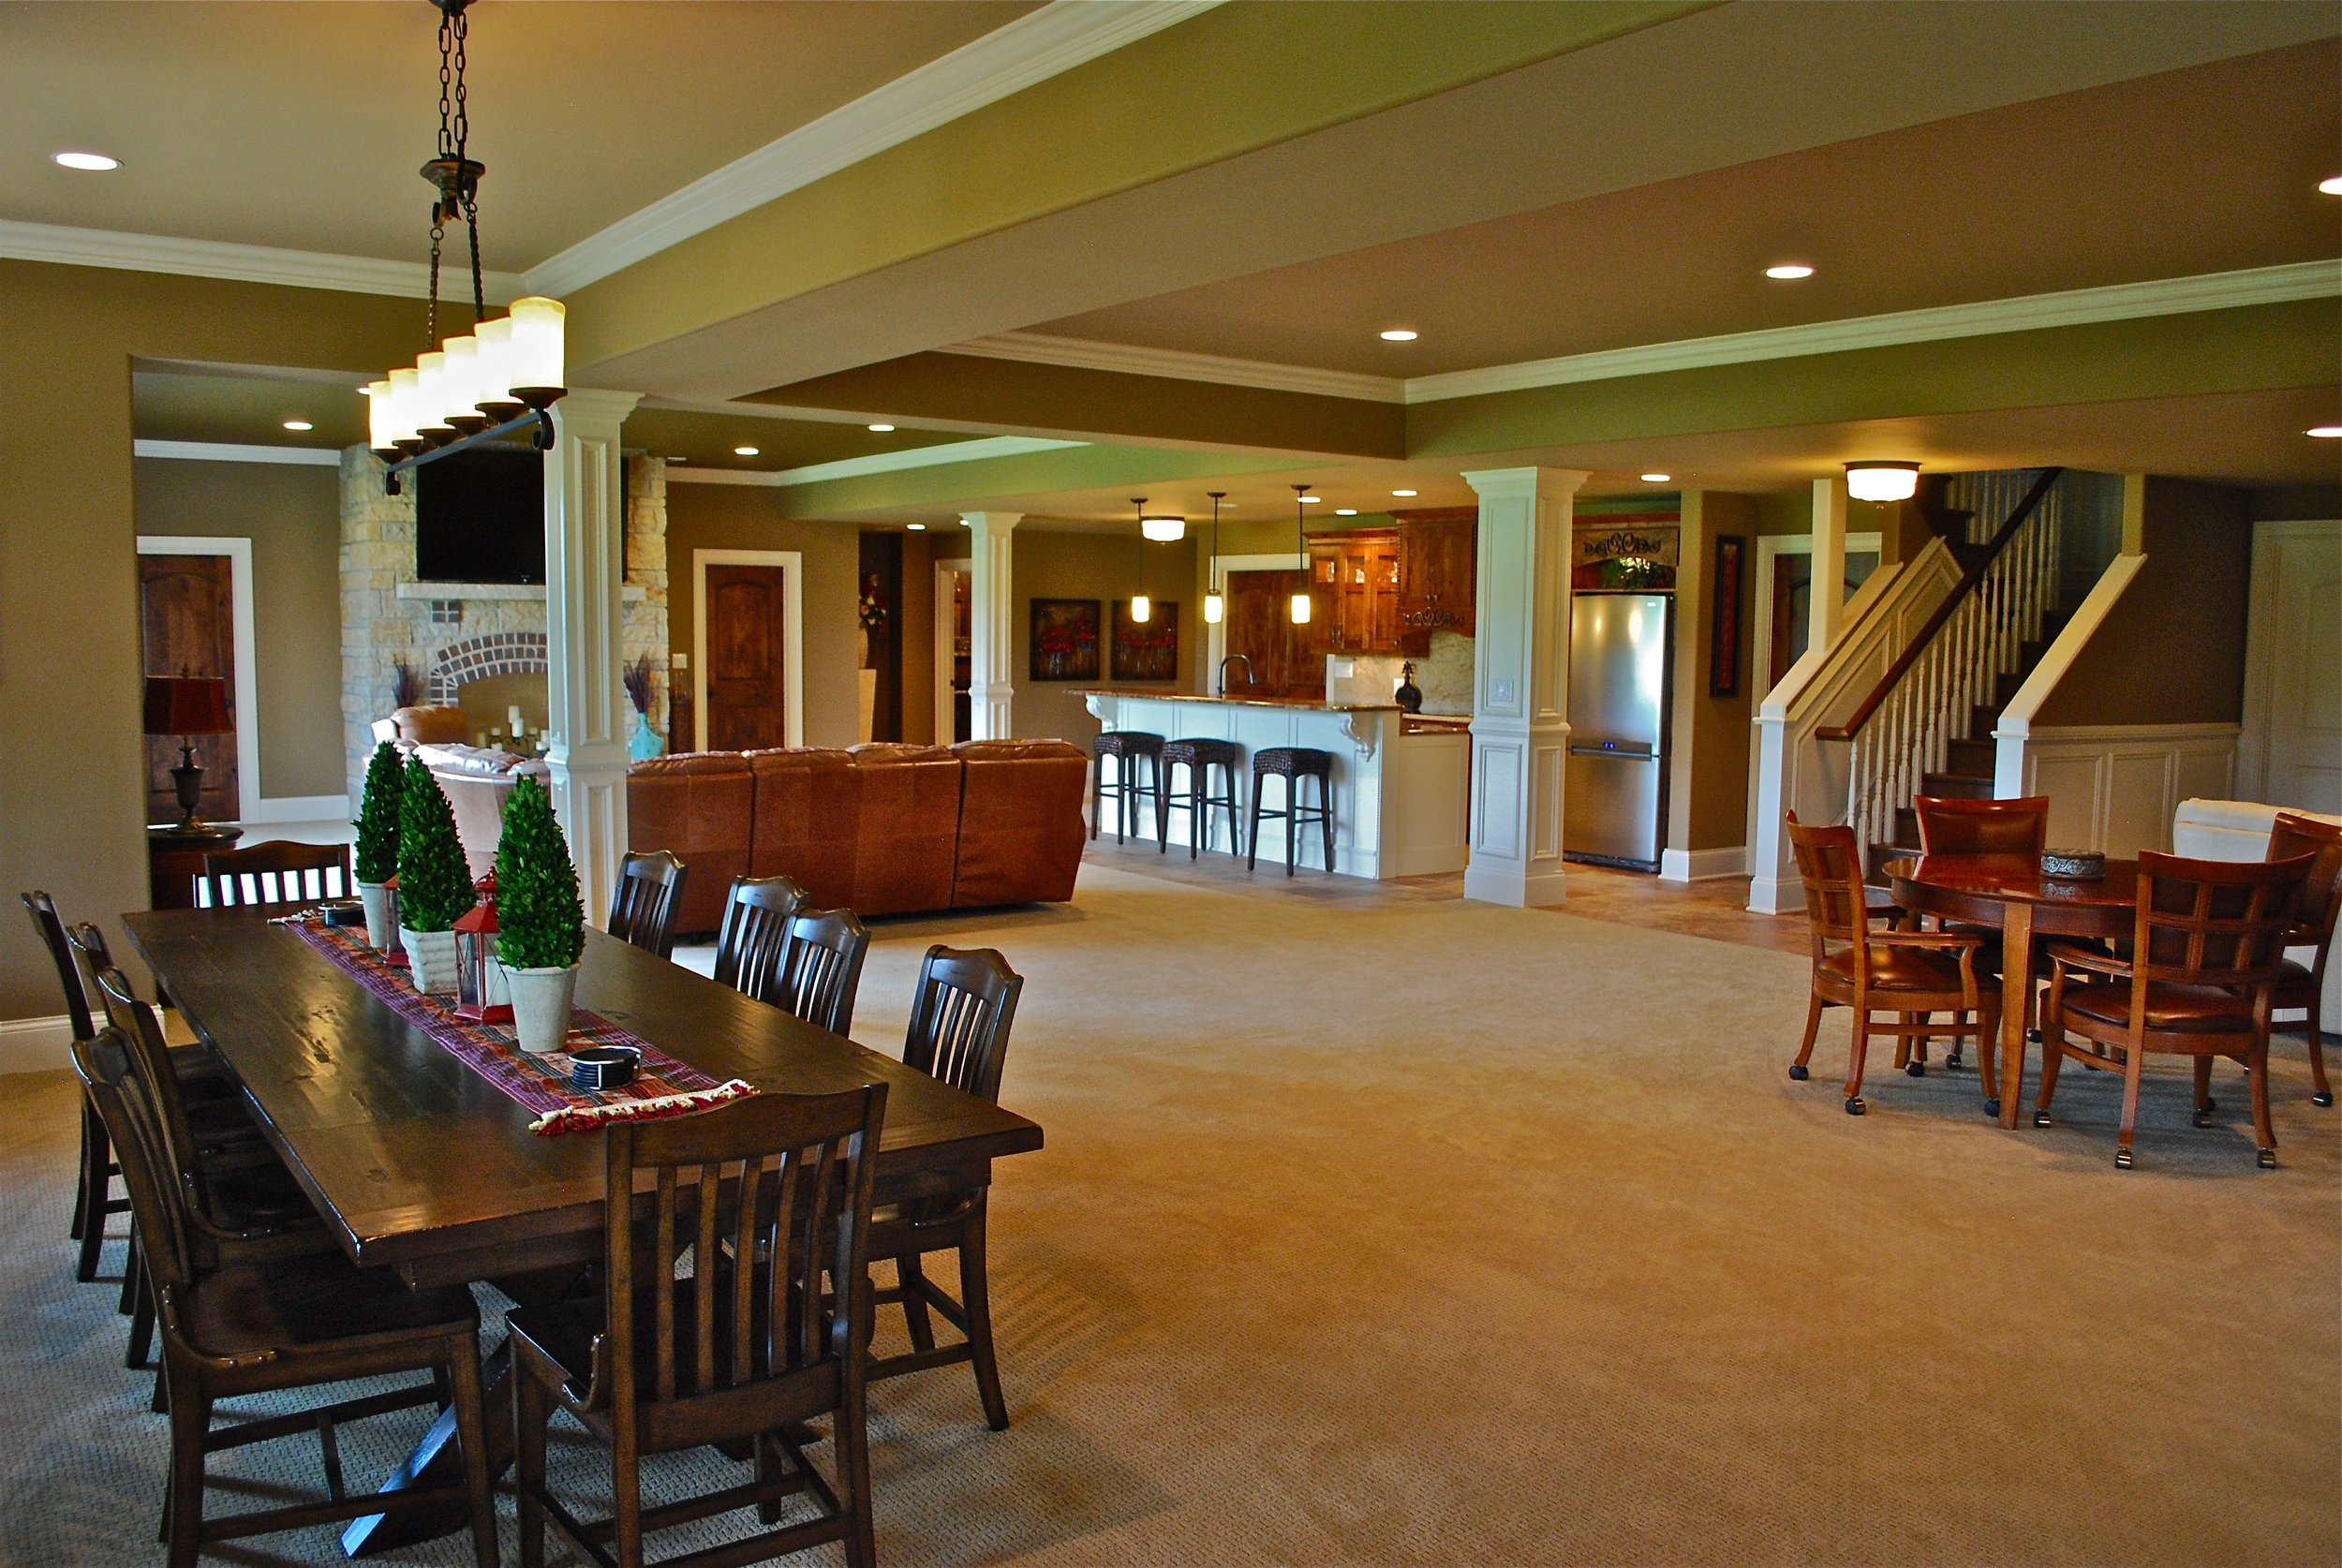 FINISHED WALK OUT BASEMENT WITH FIREPLACE, BAR, FAMILY ROOM & THEATER ROOM IN ST. CHARLES IL